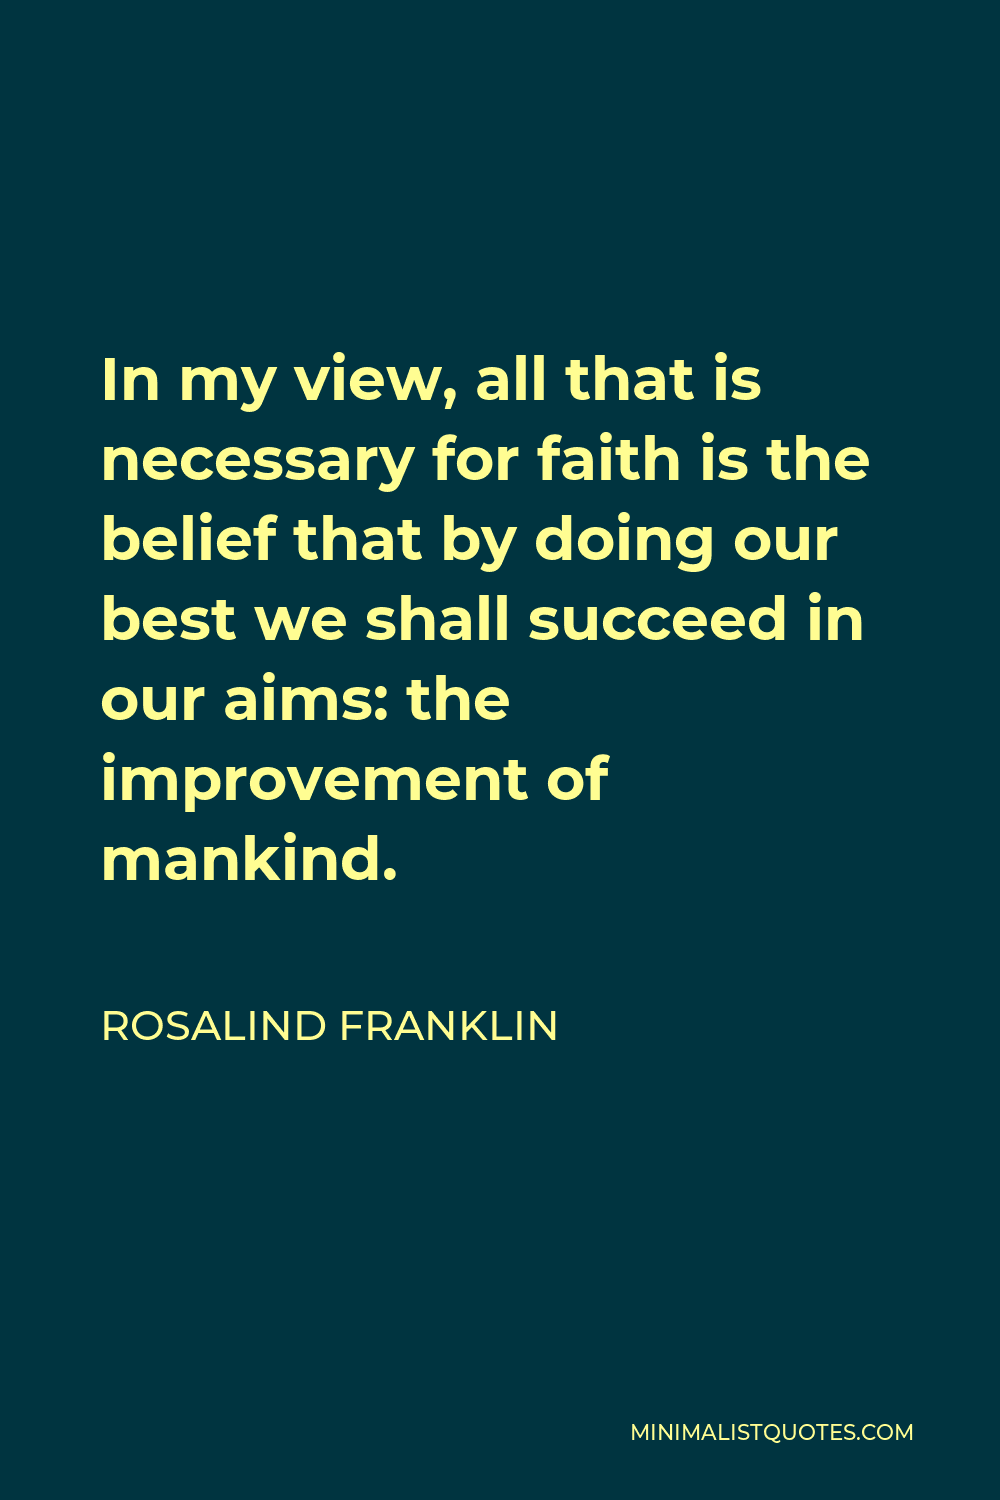 Rosalind Franklin Quote - In my view, all that is necessary for faith is the belief that by doing our best we shall succeed in our aims: the improvement of mankind.